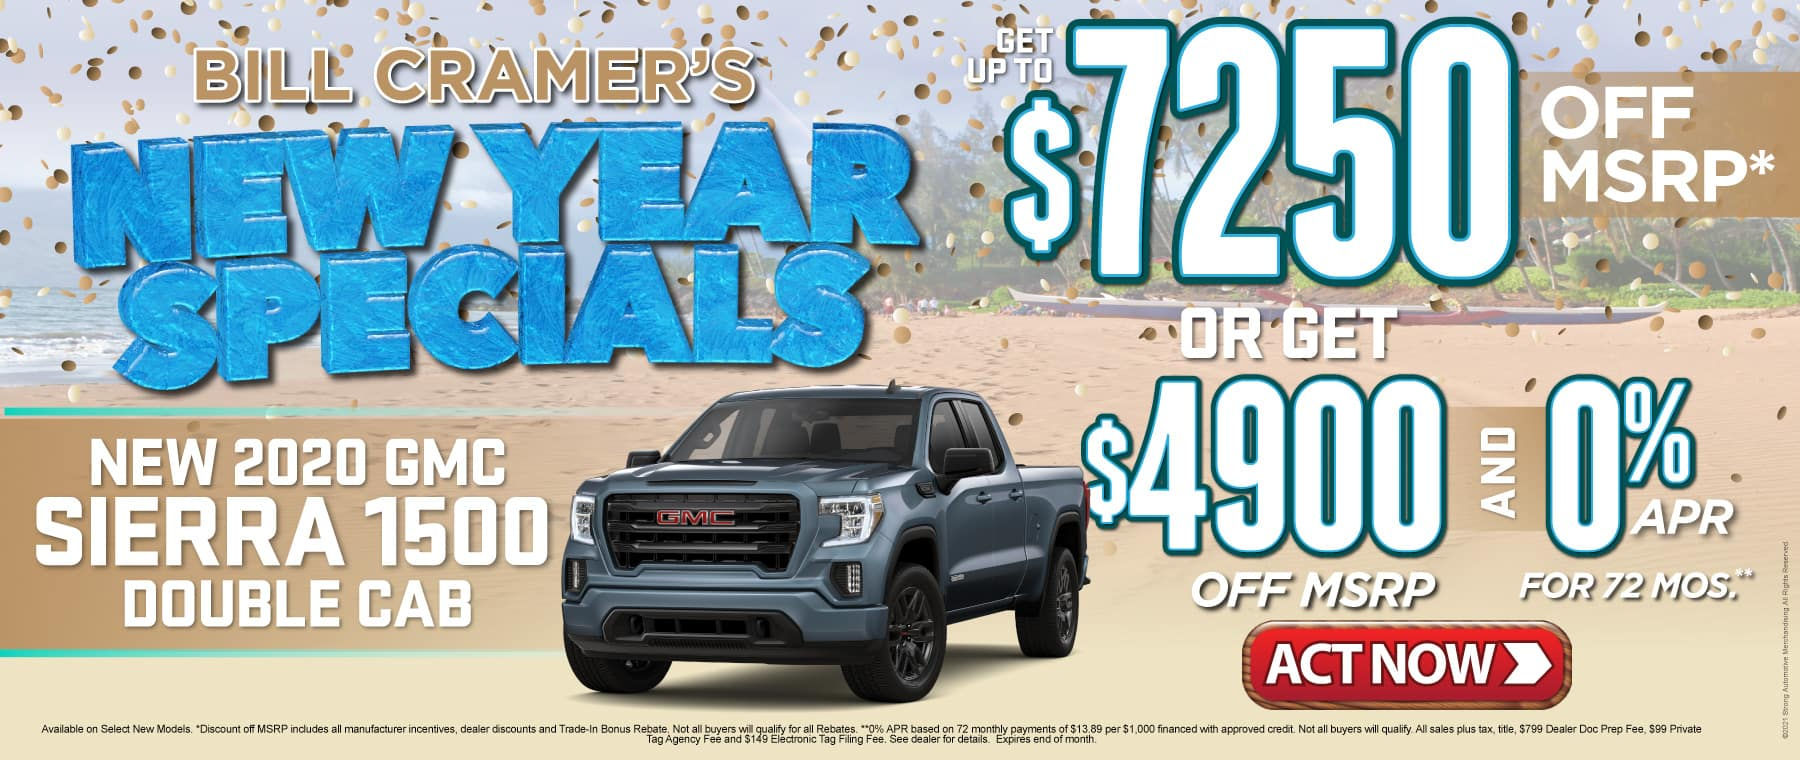 New 2020 GMC Sierra - Get up to $7250 off msrp - Act Now